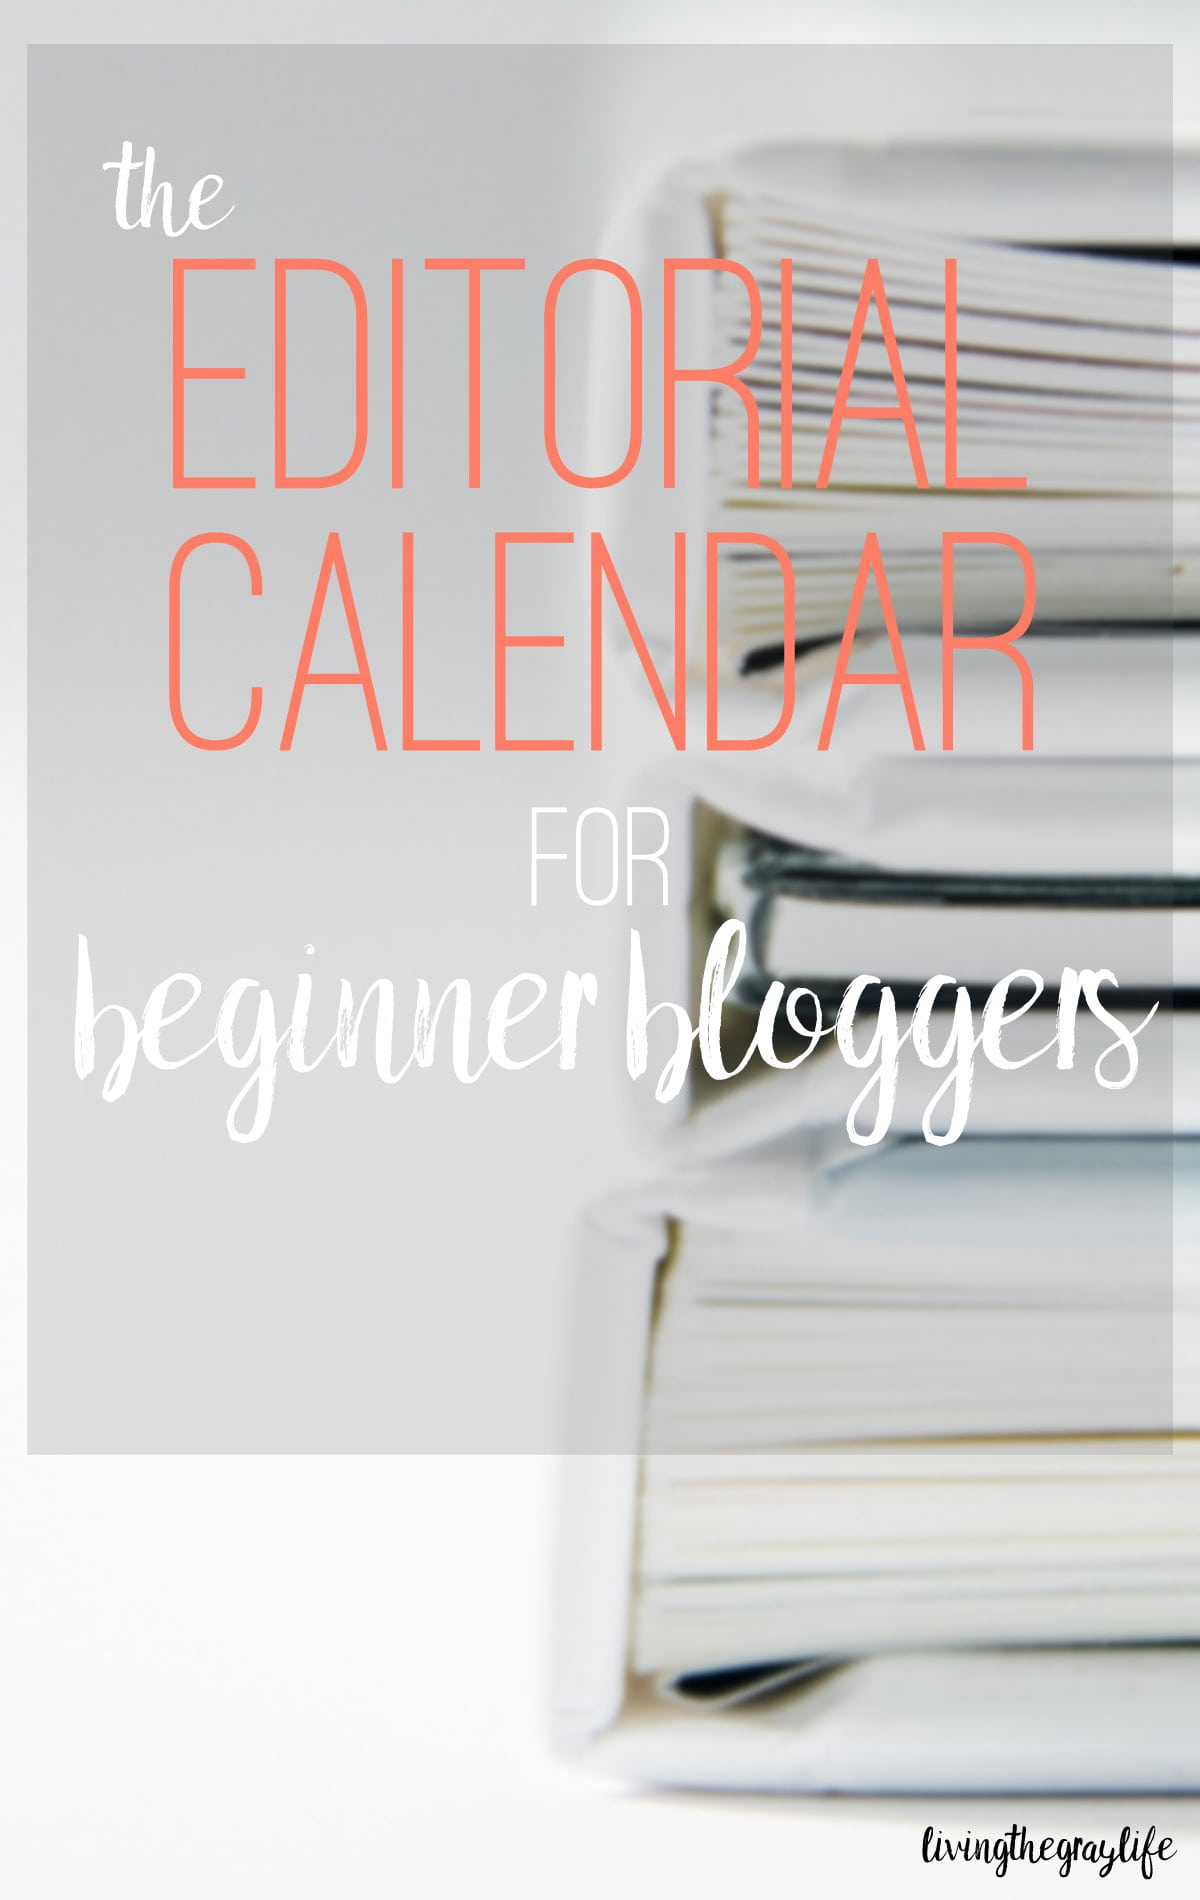 editorial-calendar-beginner-blogger